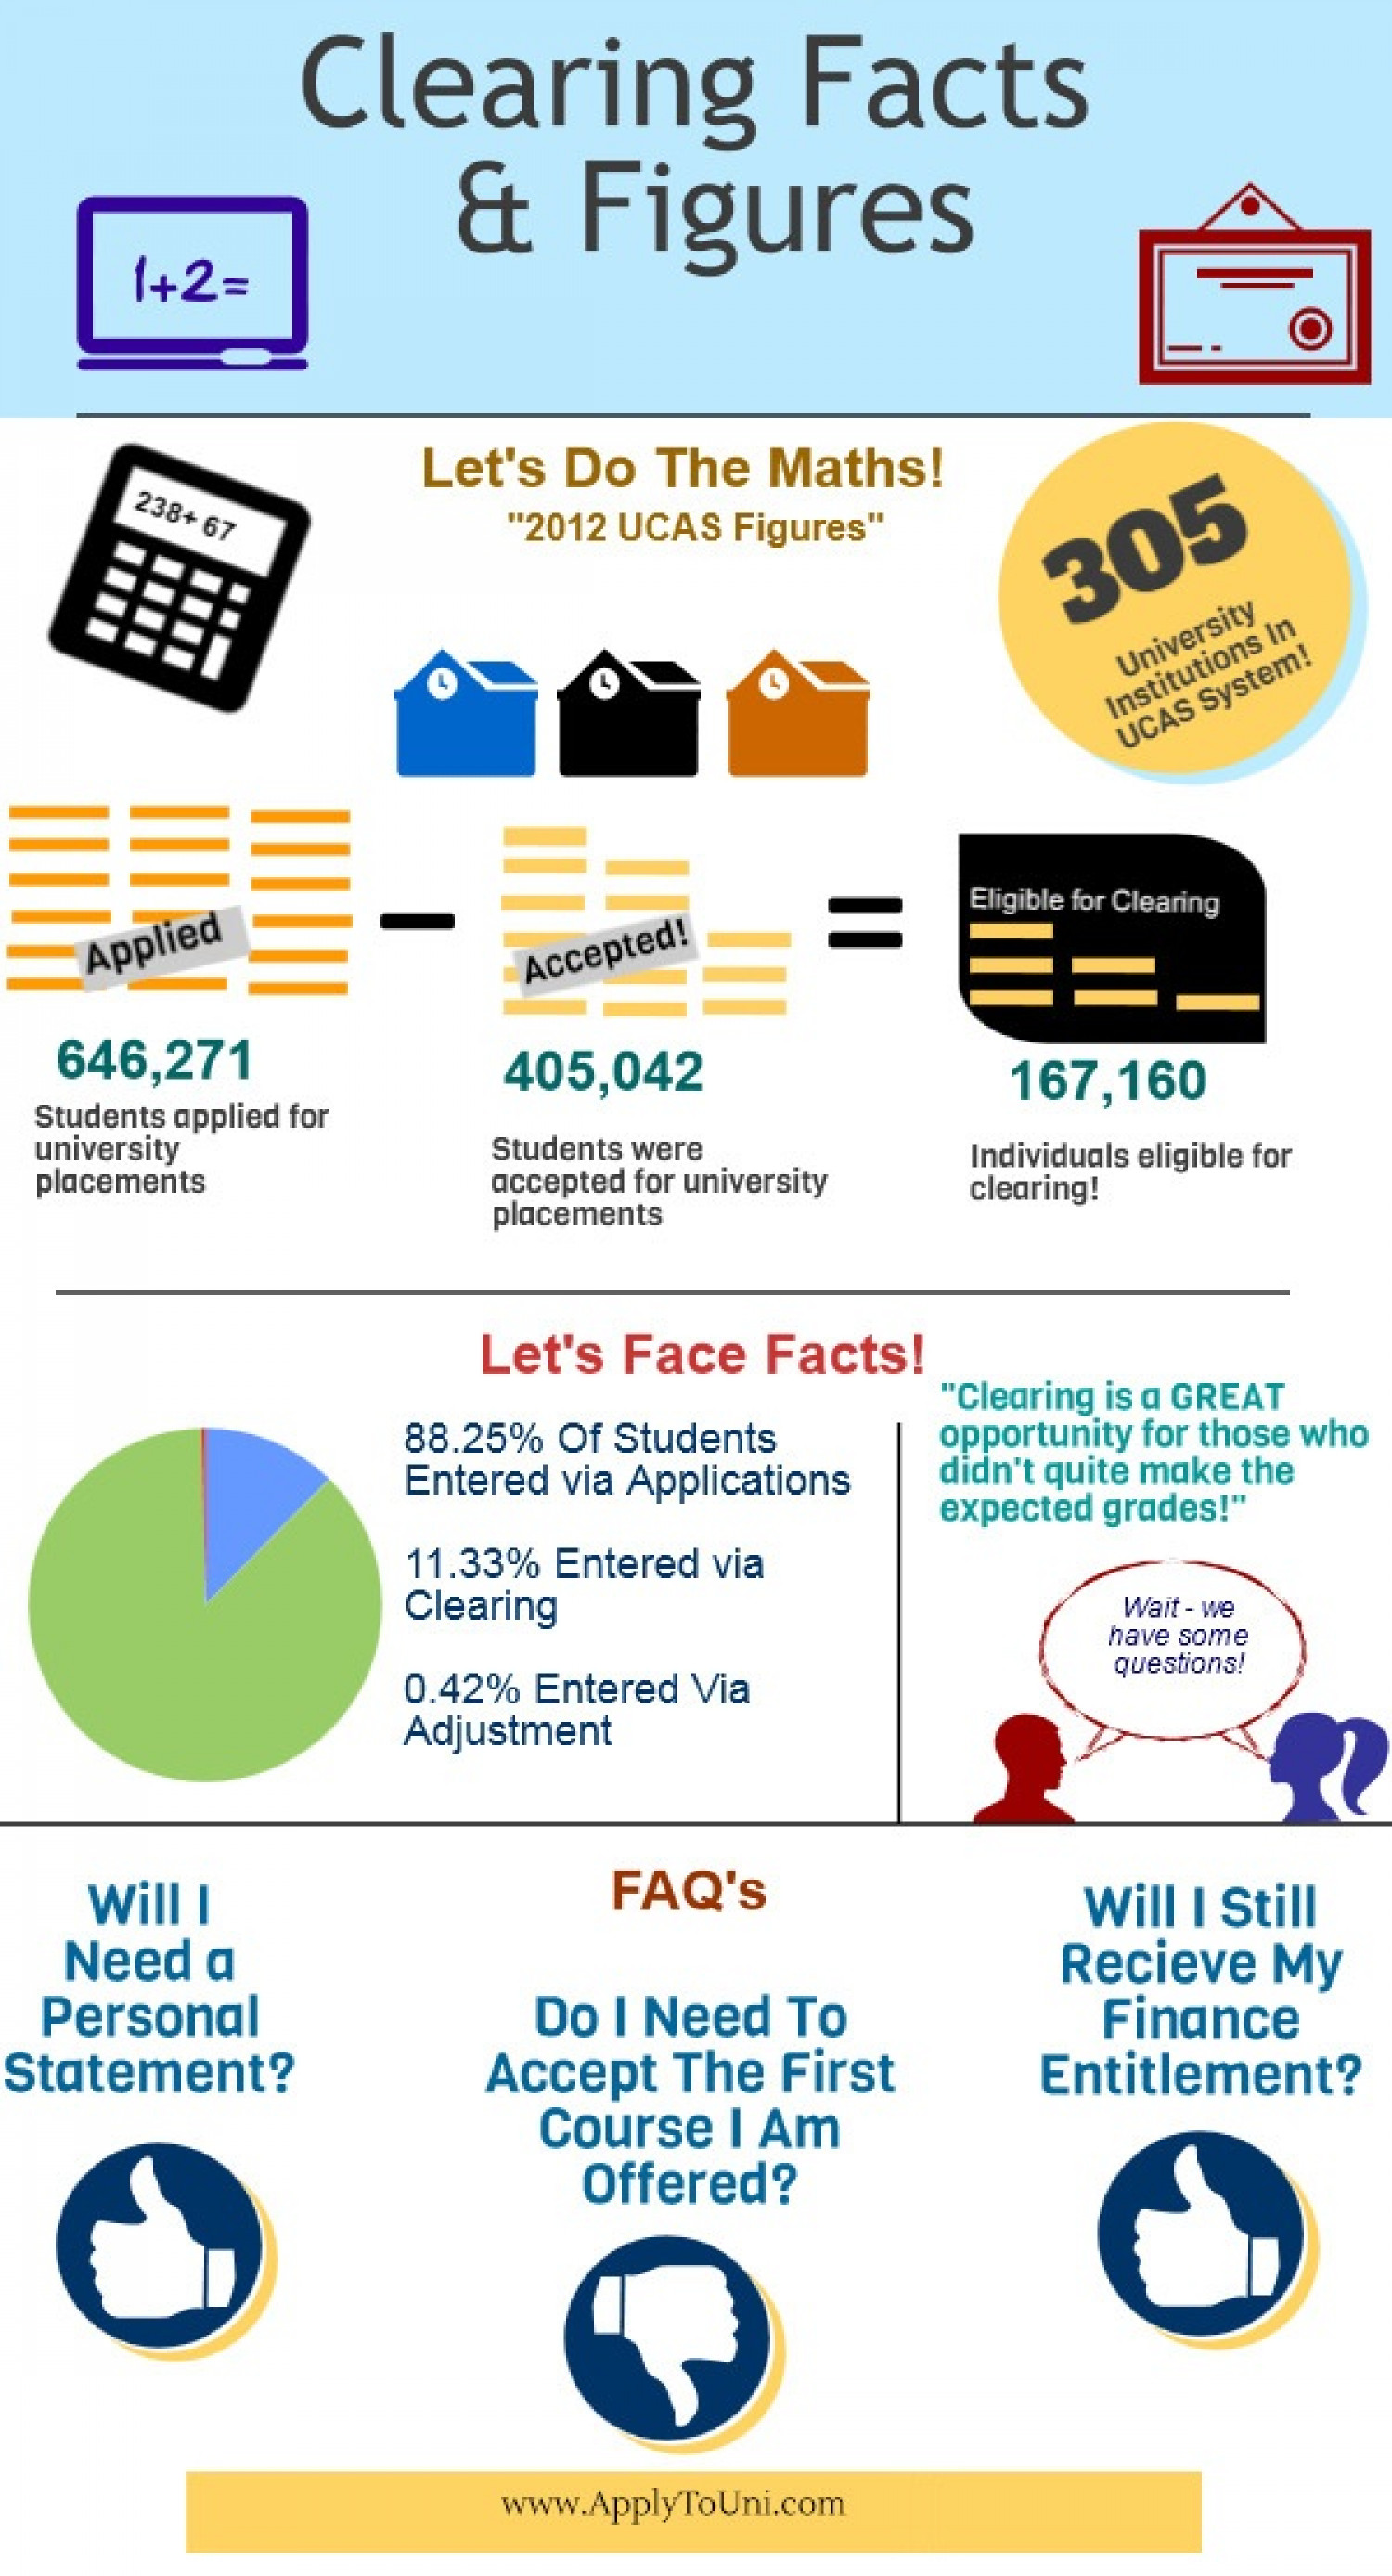 Clearing Facts & Figures! Infographic